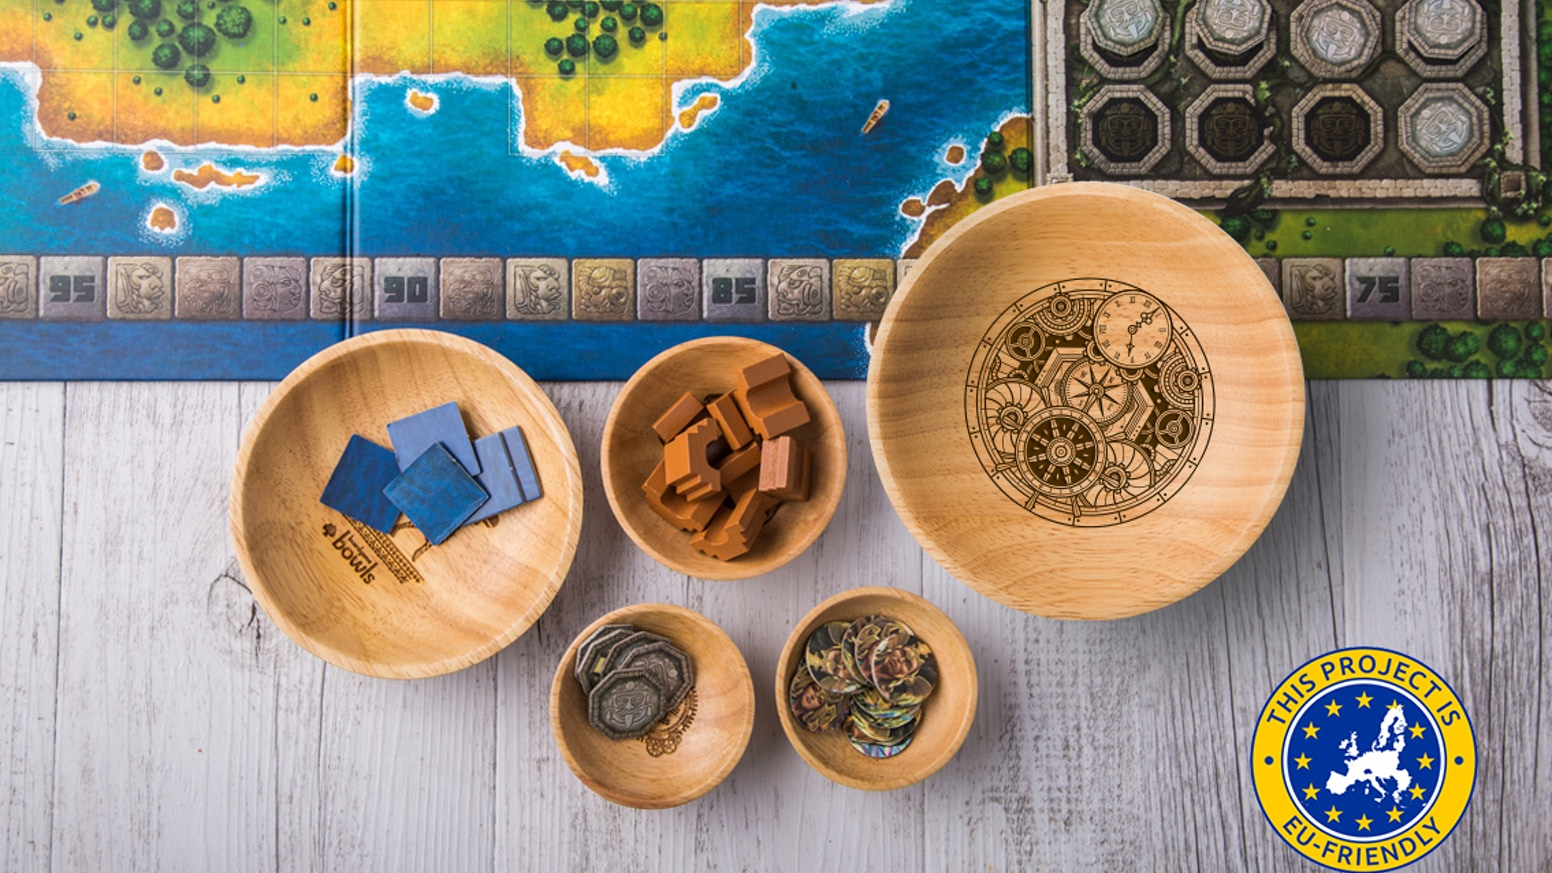 We're launching a larger bowl size and some sweet new artwork for Board Game Bowls.